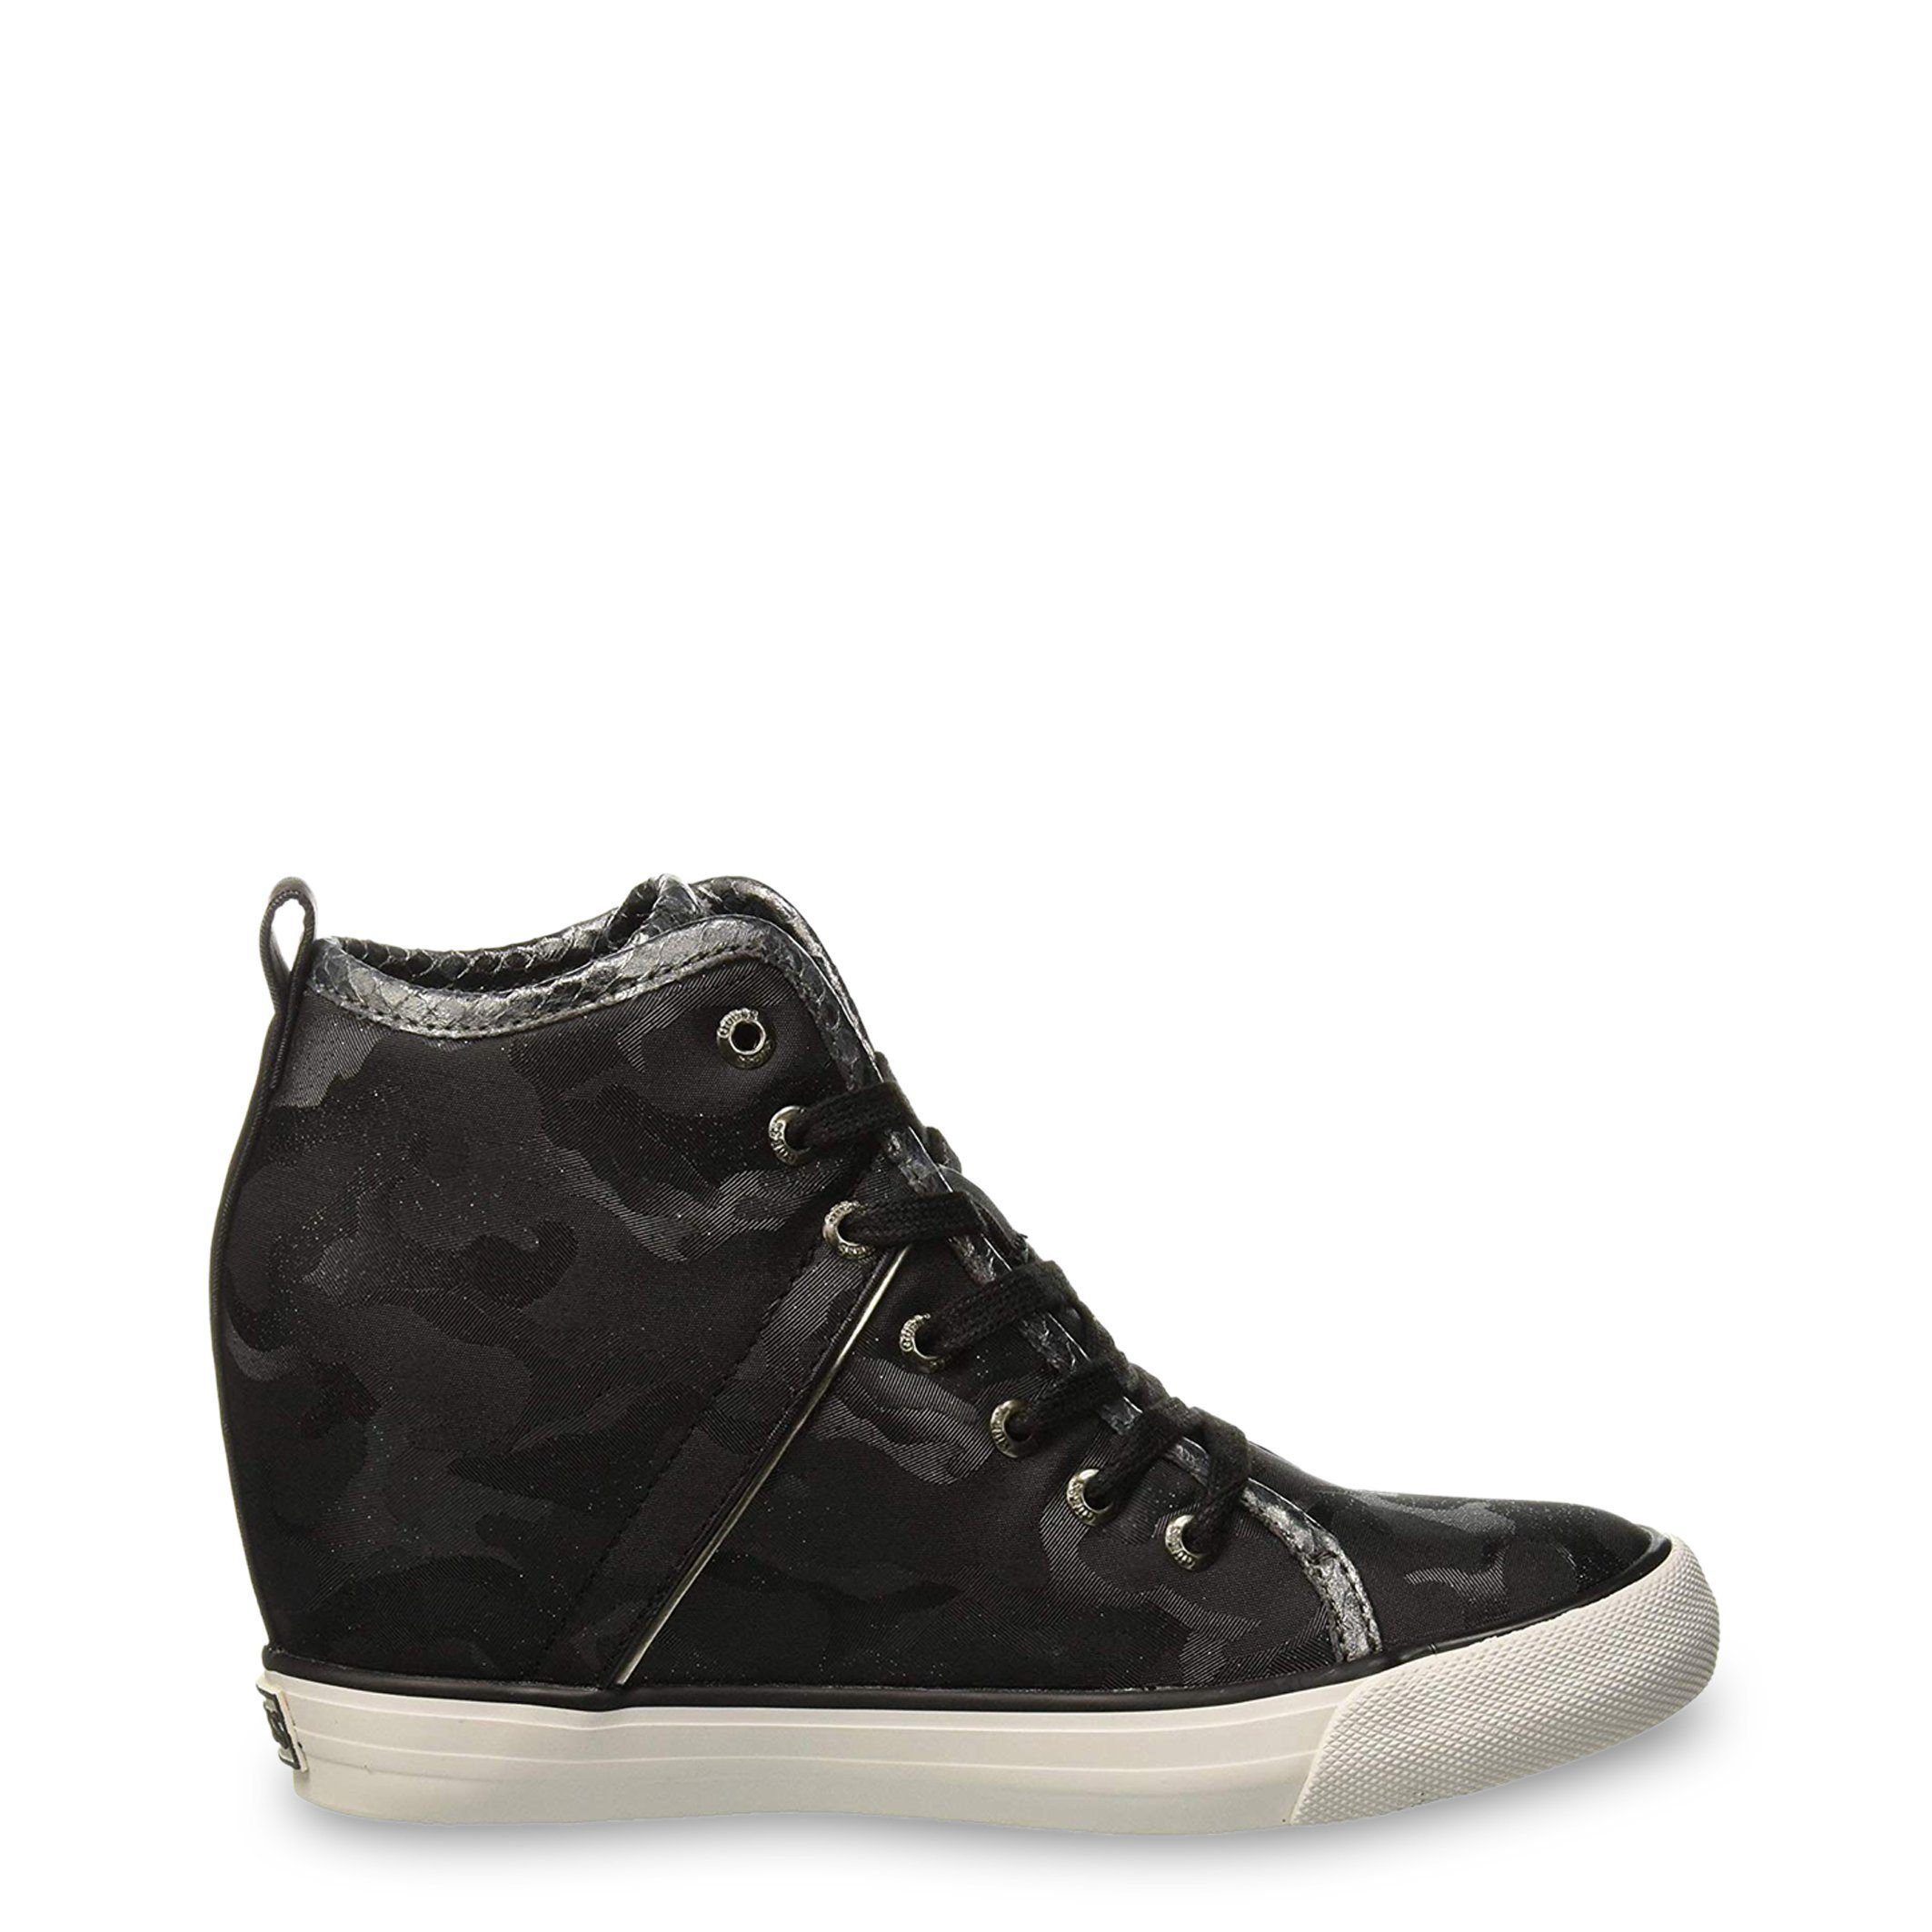 b059dad8fdd Guess Wedge Sneakers In Camo Black - Blowout Clearance - FLJLY3FAB12 ...